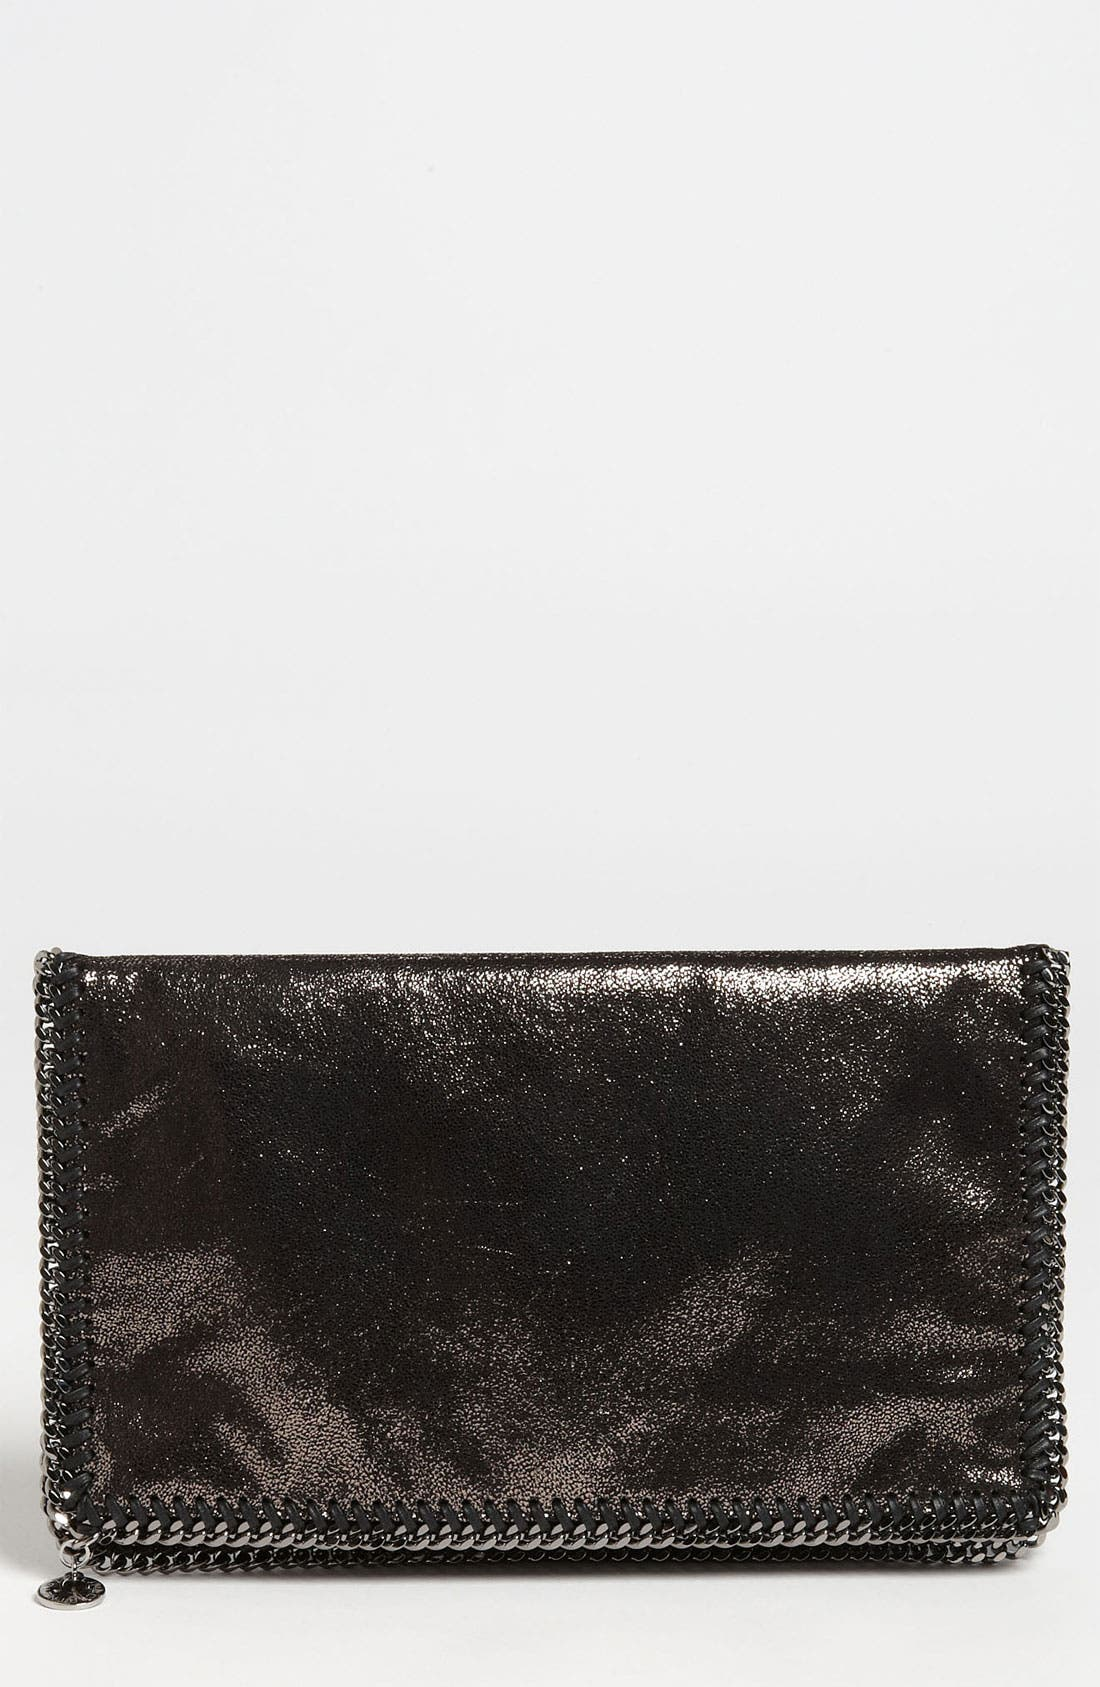 Alternate Image 1 Selected - Stella McCartney 'Falabella' Metallic Clutch